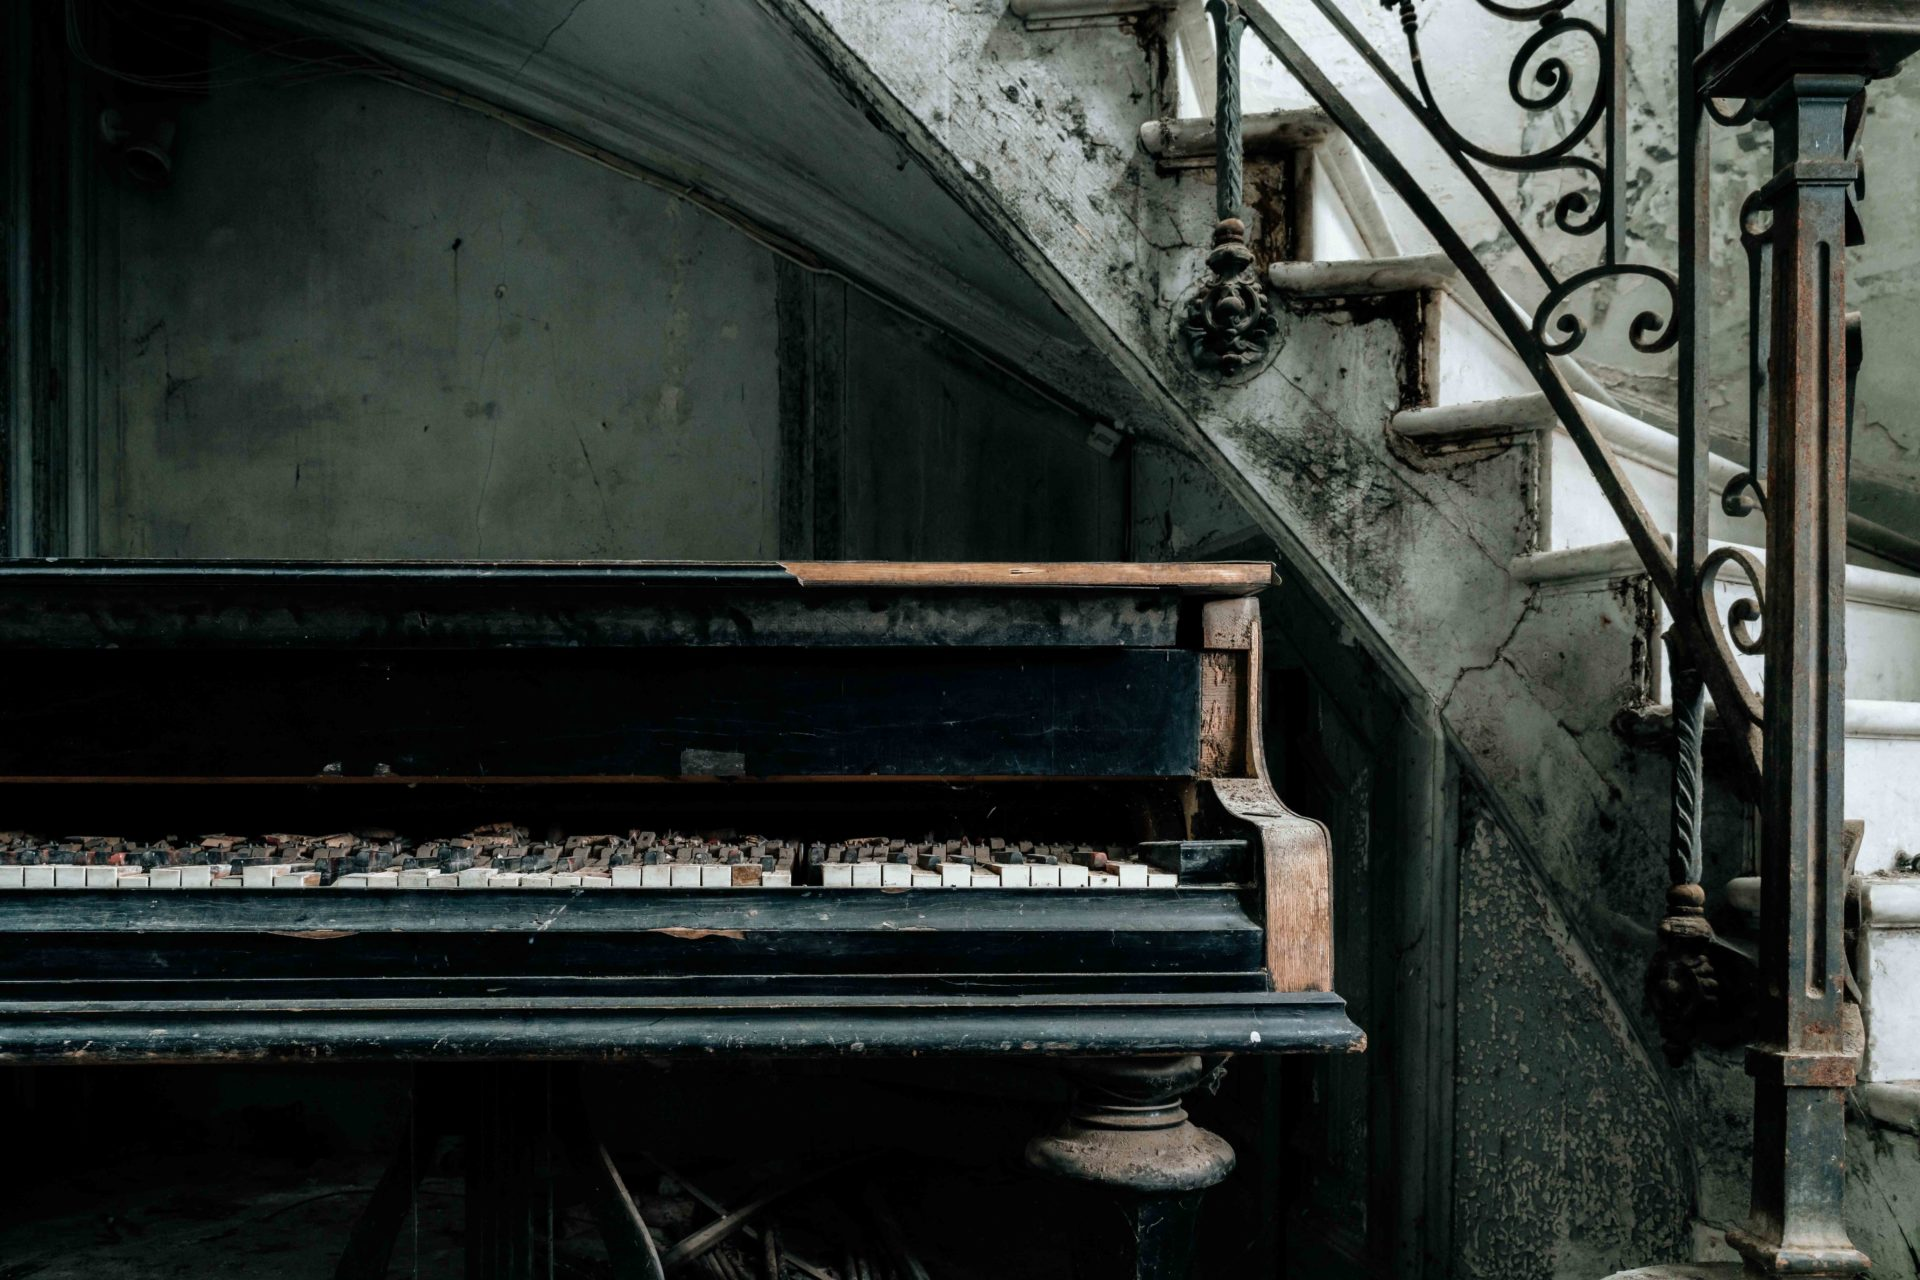 Requiem pour pianos 86 | Serie Requiem pour pianos | Romain Thiery | France